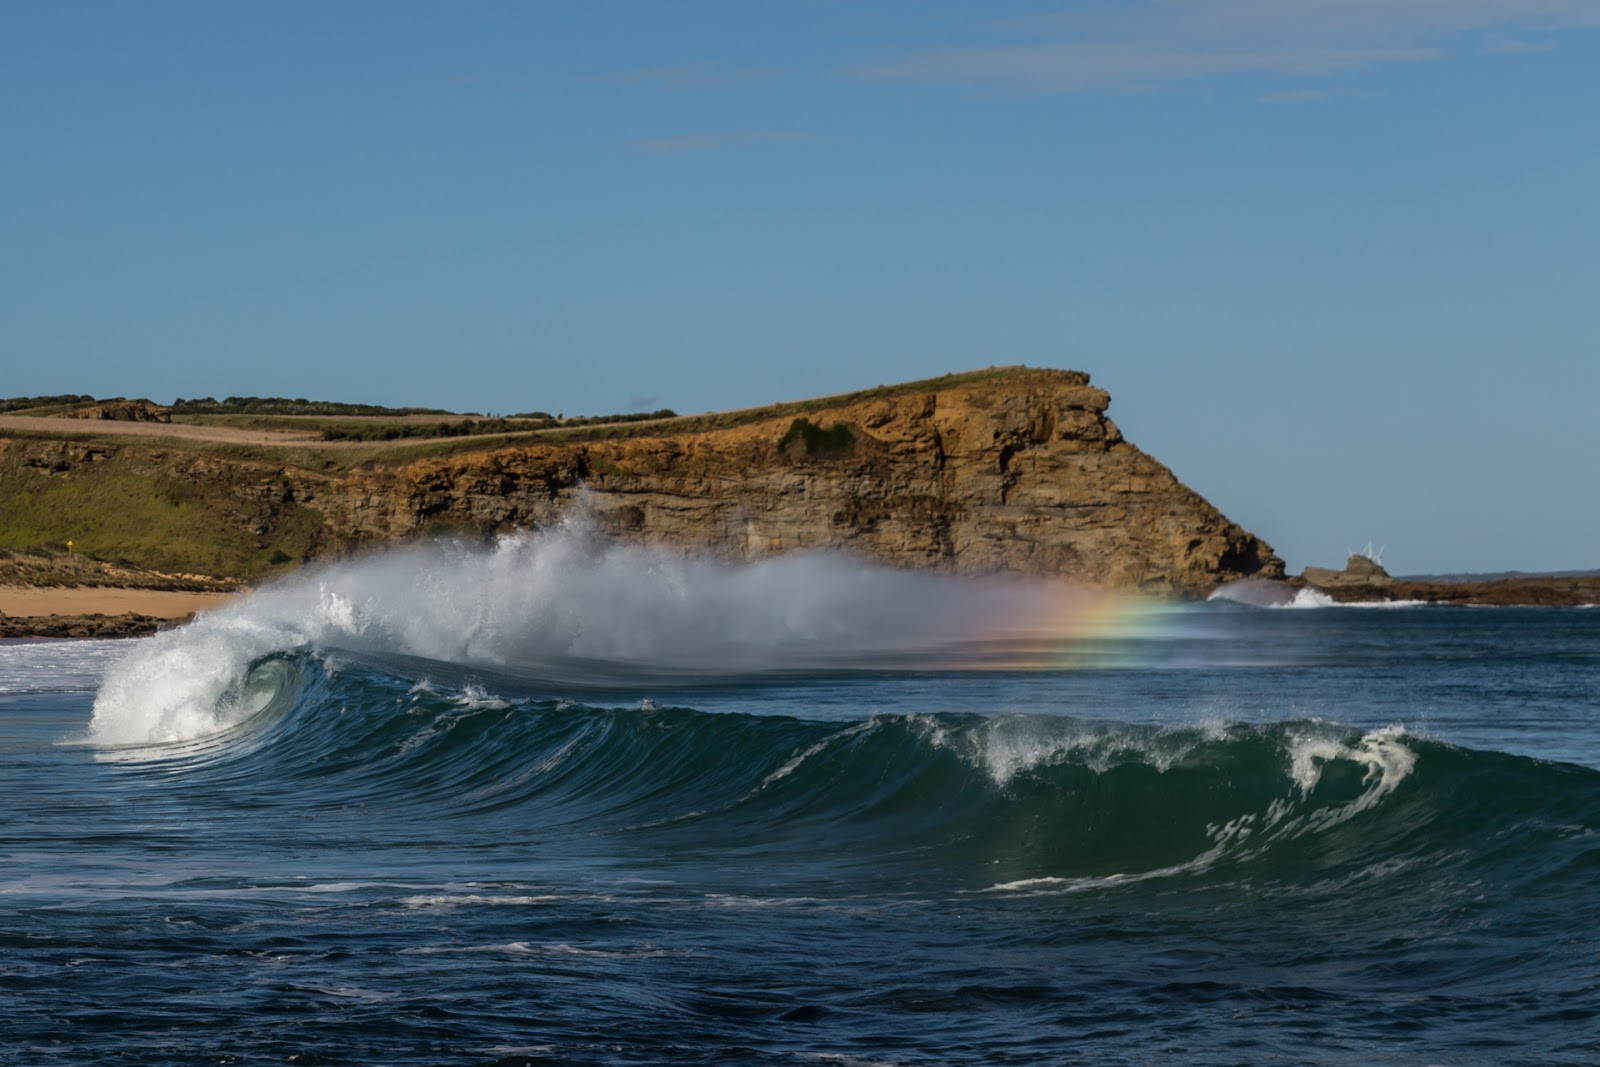 rainbow in breaking wave